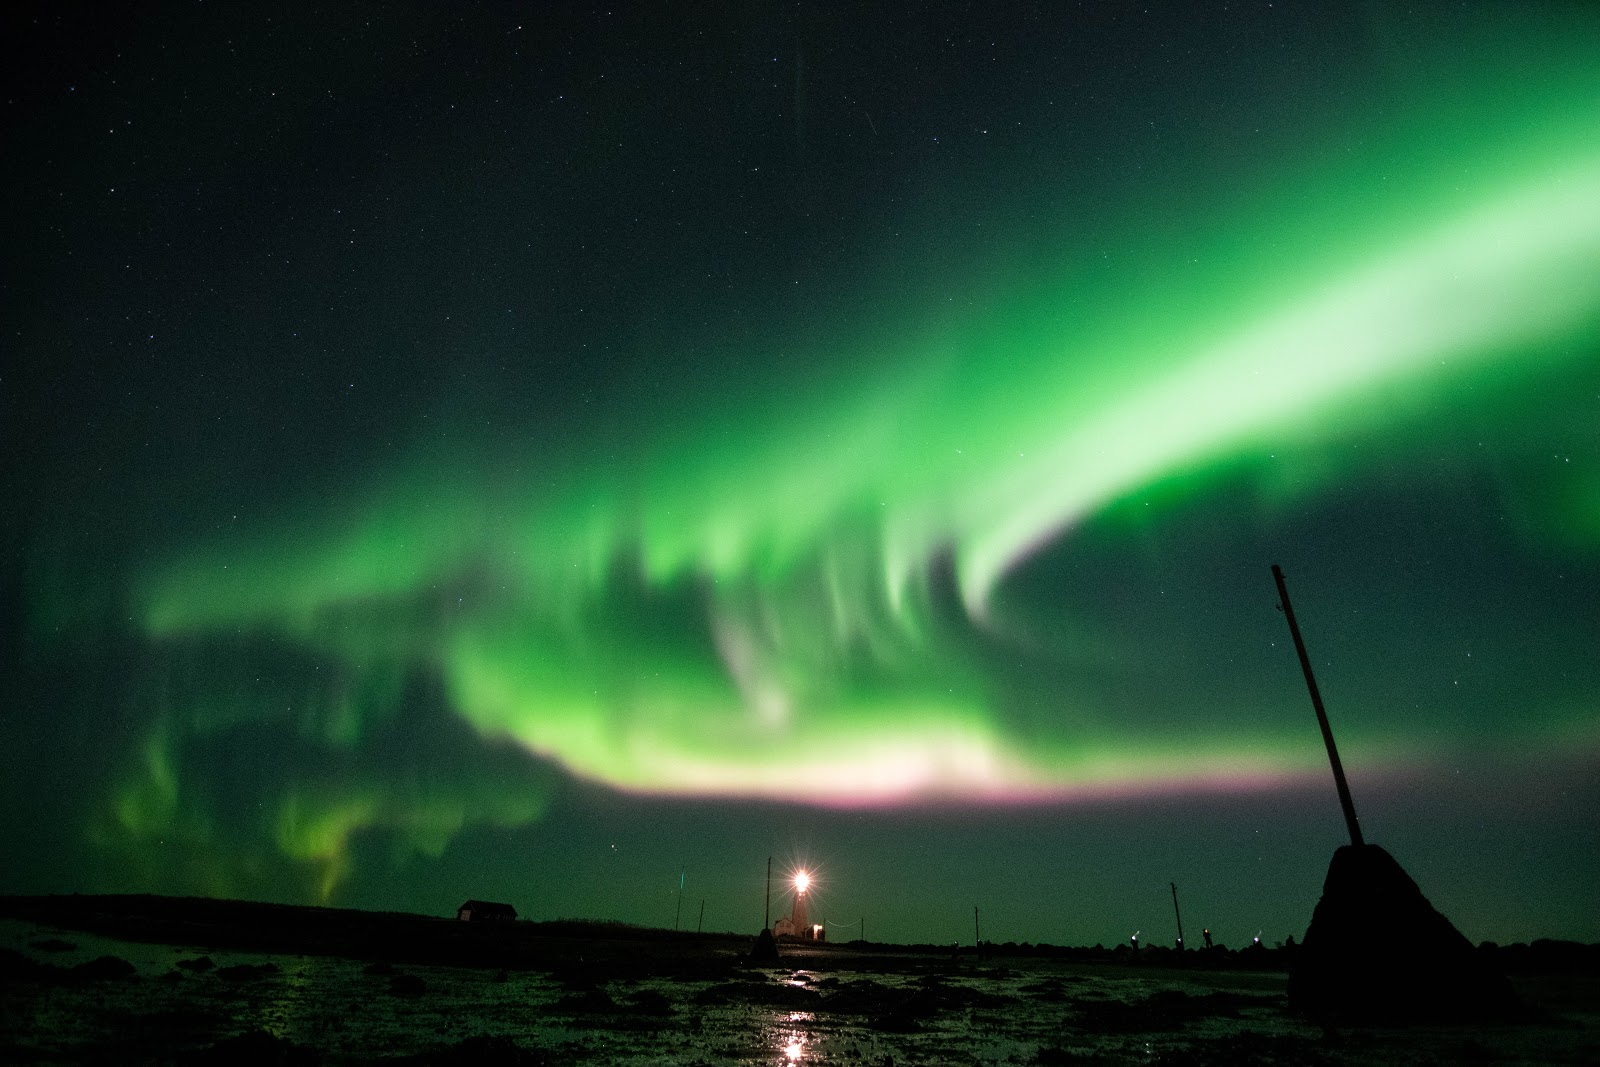 A powerful Northern Lights display over Grotta Lighthouse on the edge of Seltjarnarness peninsula